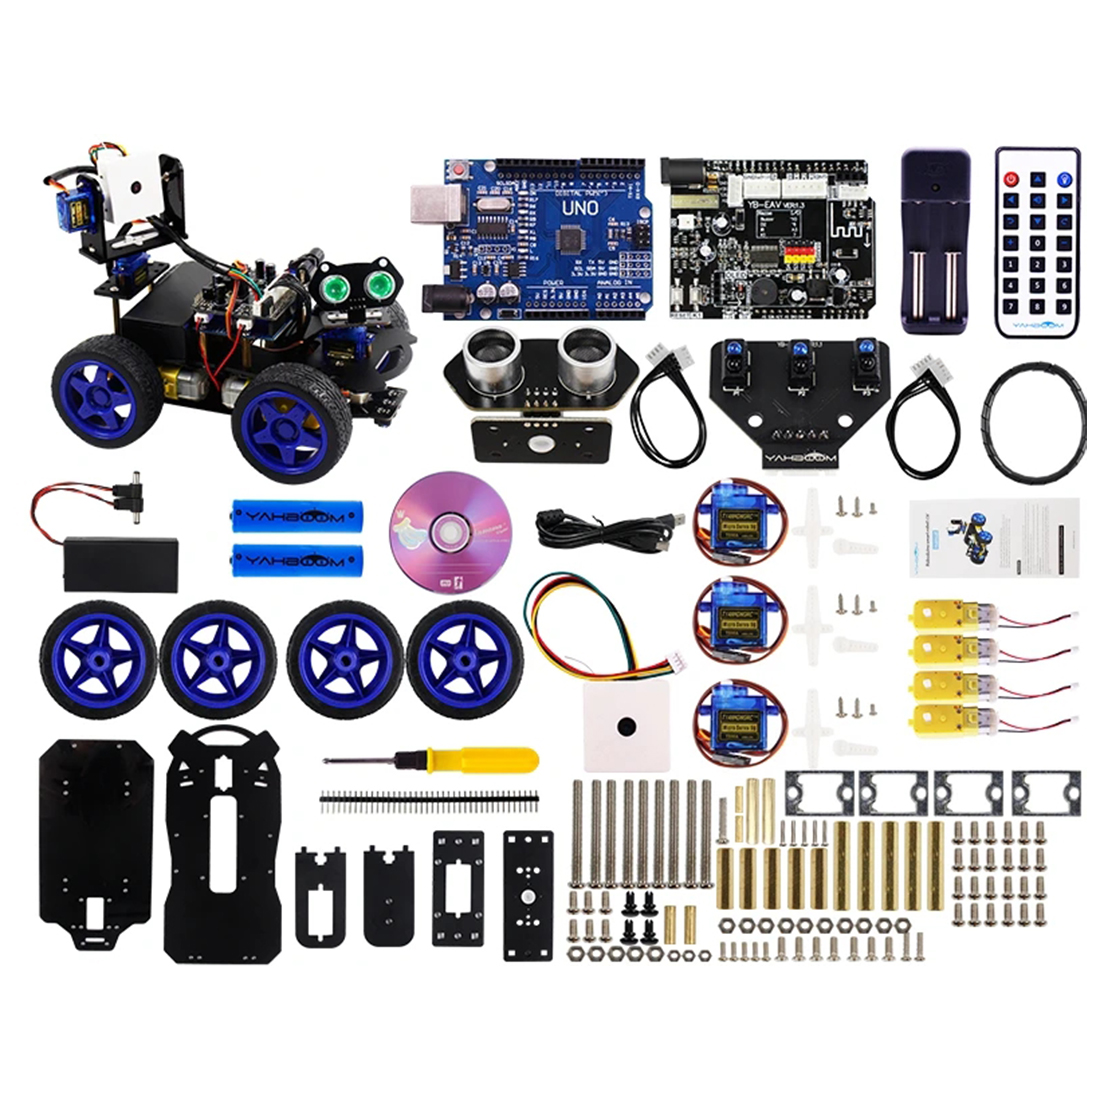 FOR Scratch3.0 Luminescent Ultrasonic Module Smart Robot Car Wifi Camera Gimbal Kit For Arduino FOR UNO(No Battery)